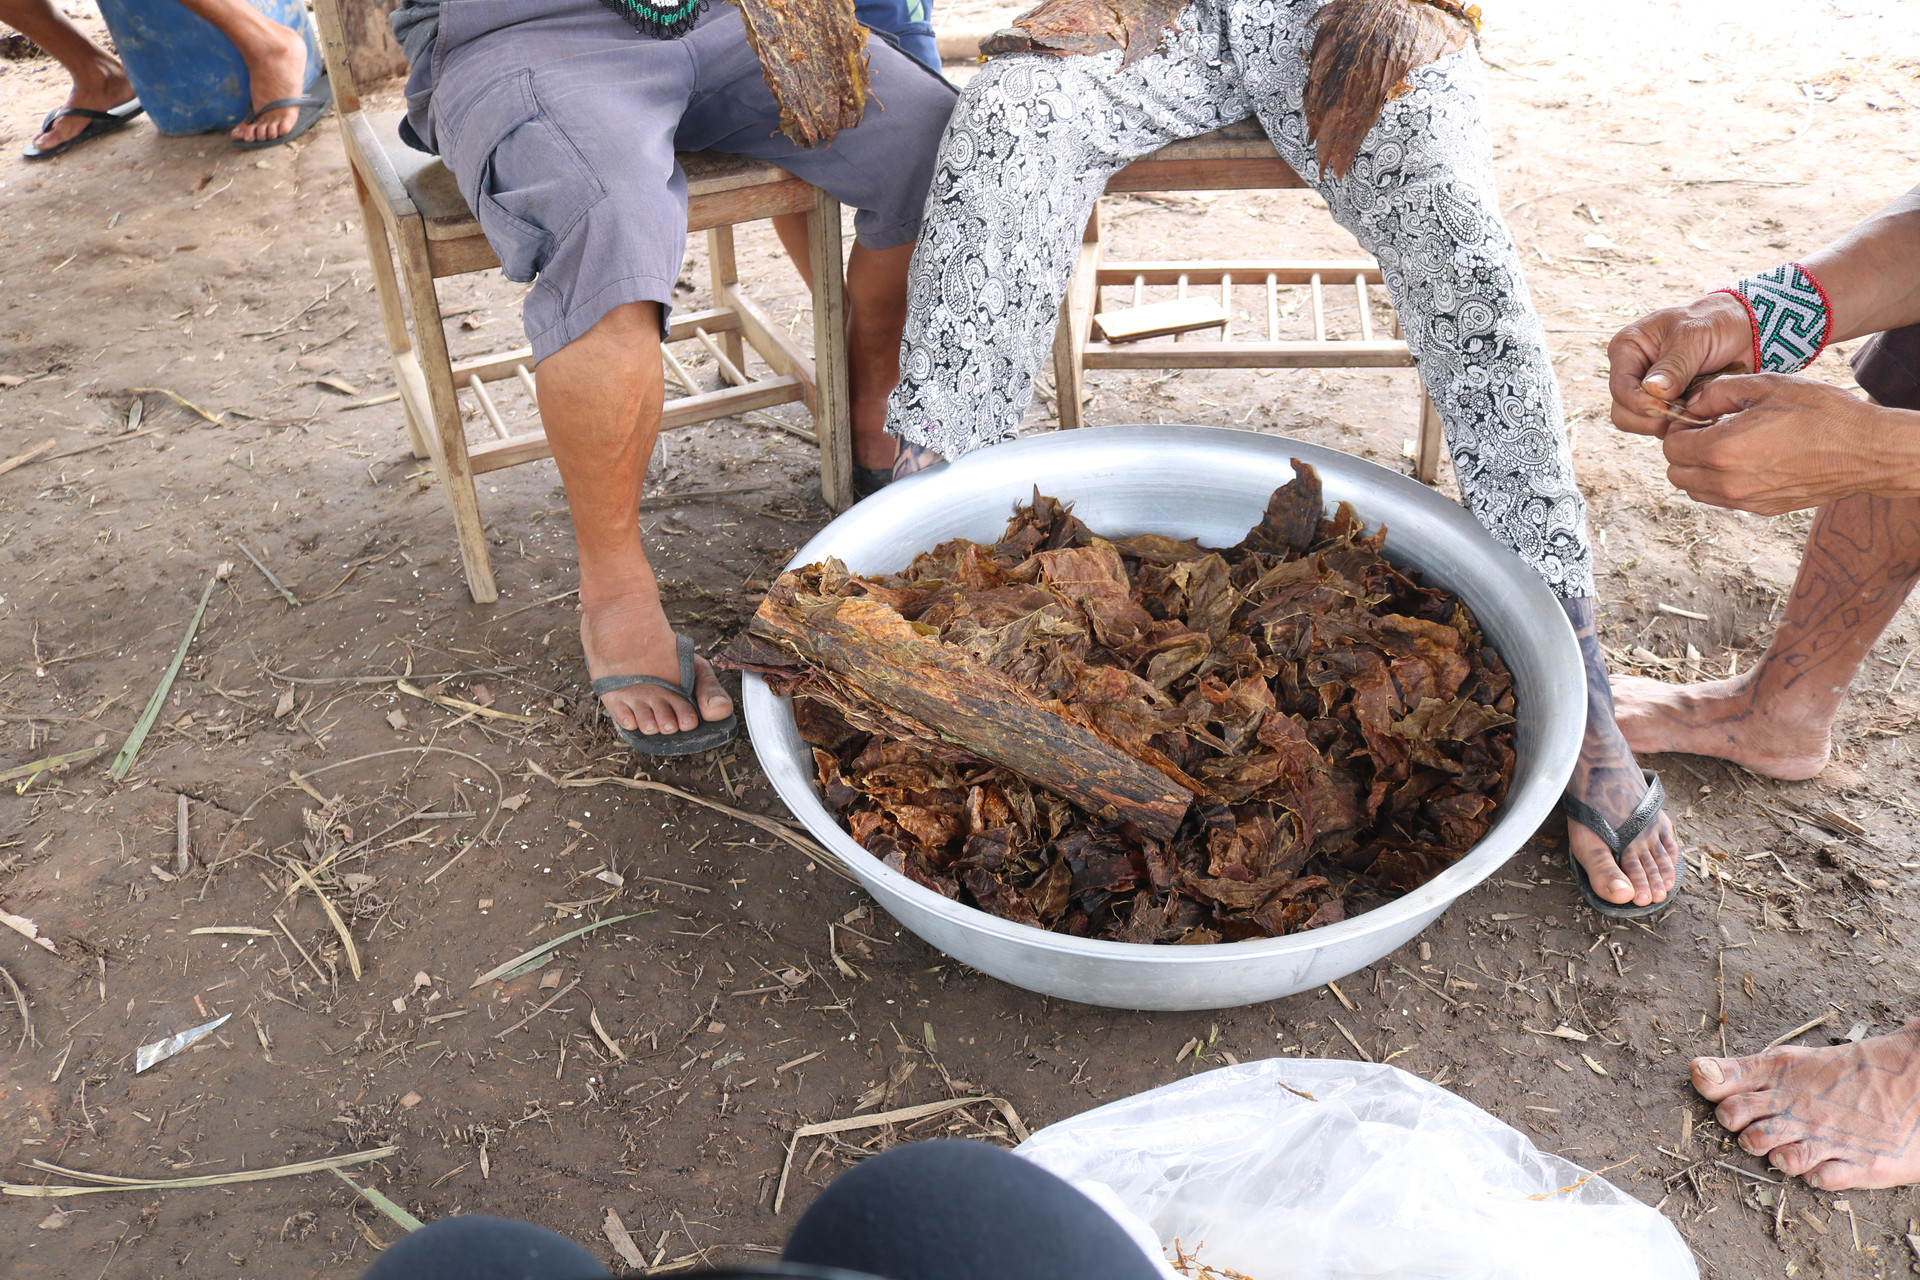 Preparation of the rapé medicine: The tobacco for the medicine is made by separating it from its stems.